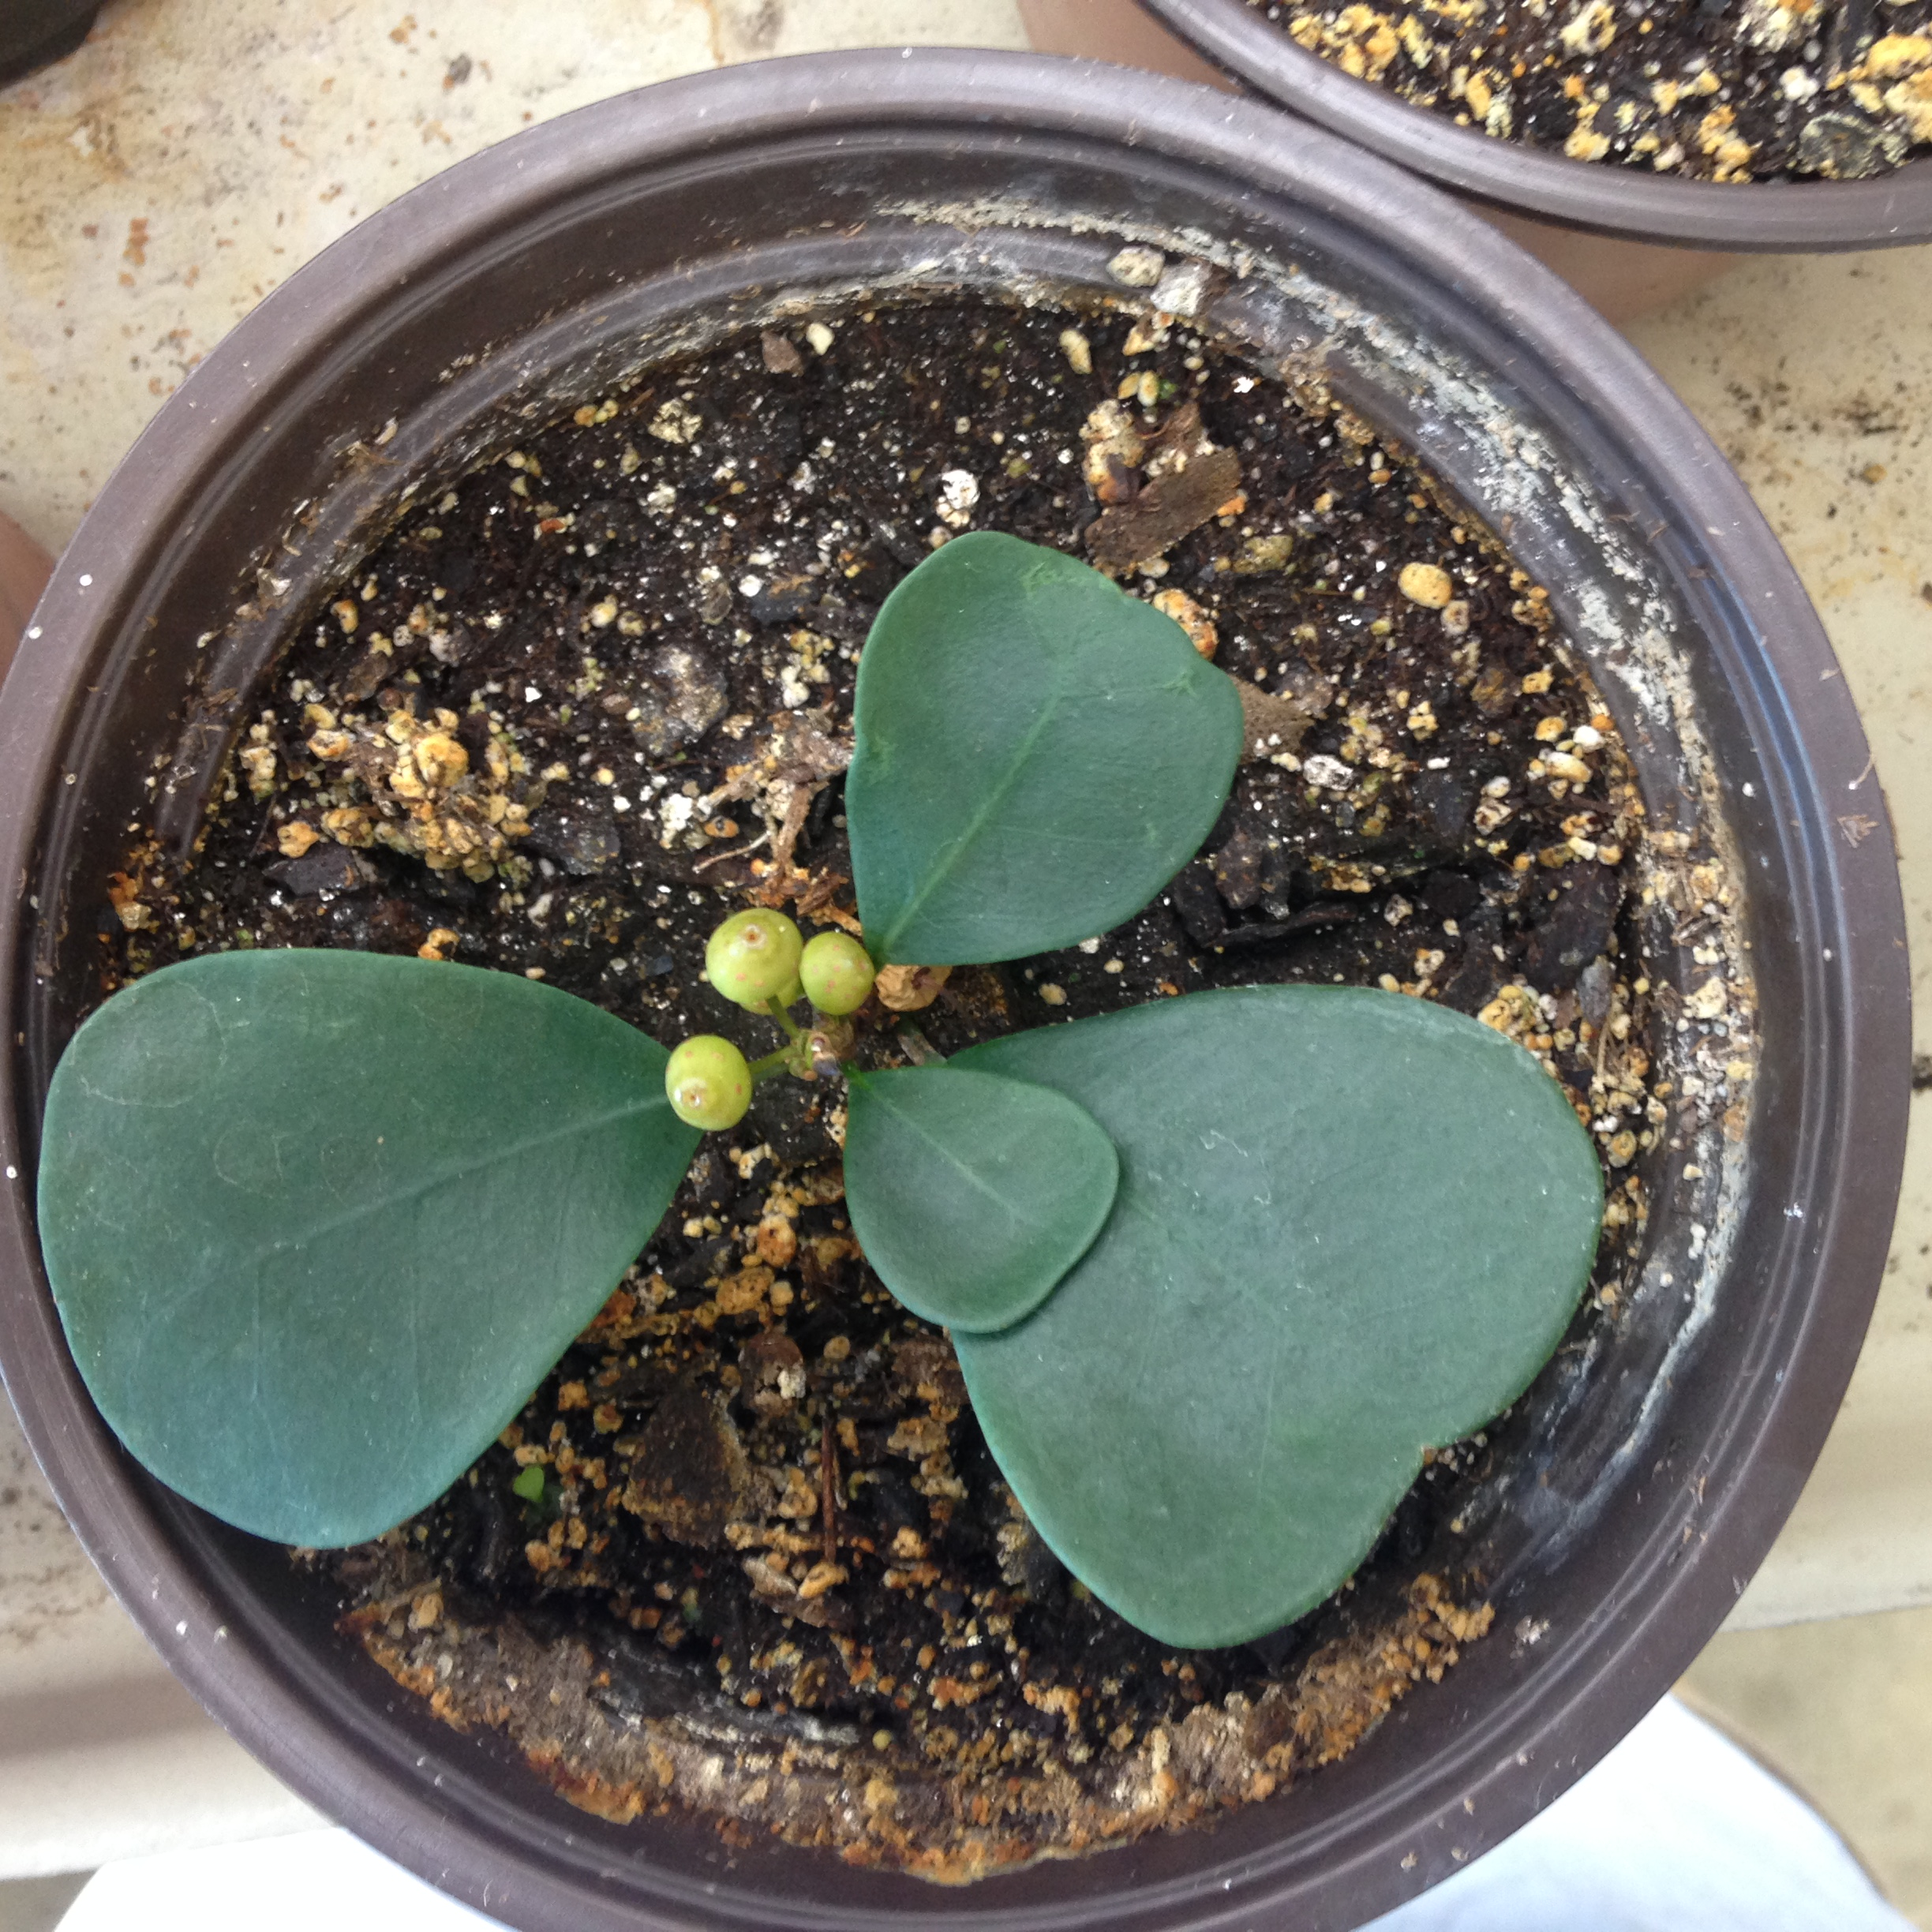 Ficus deltoidea start with seed formed